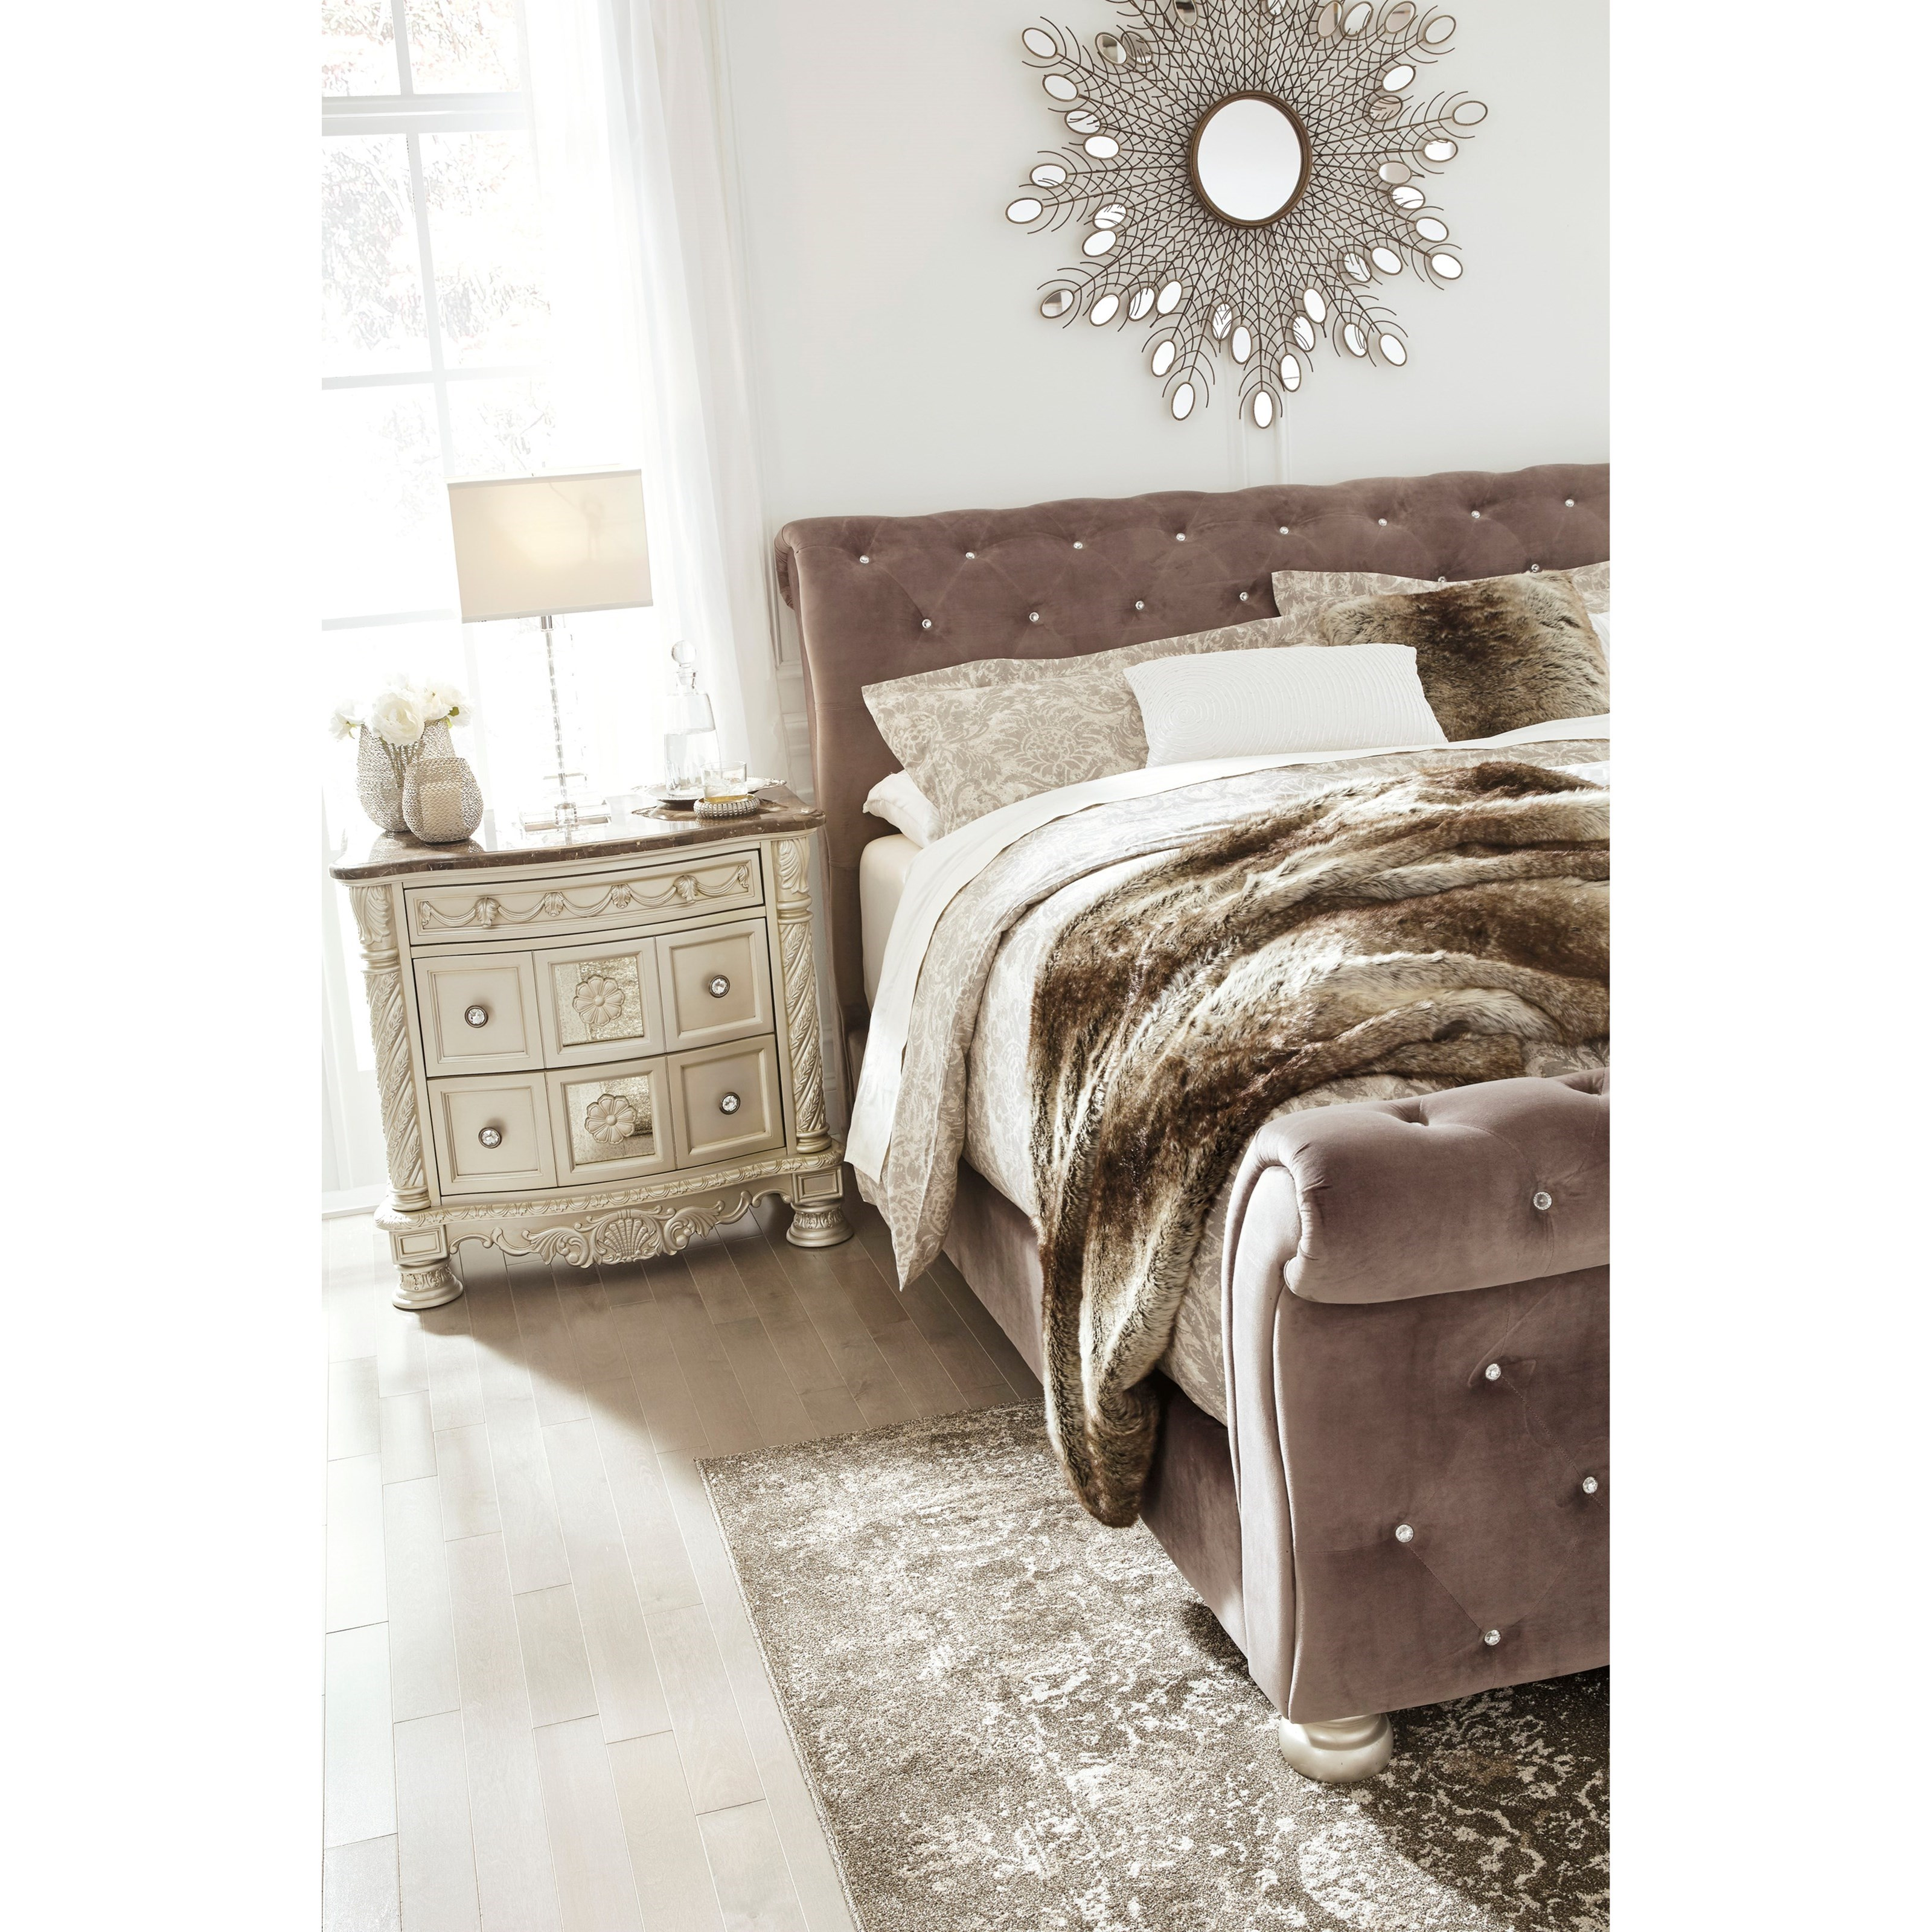 King Upholstered Sleigh Bed With Faux Crystal Tufting By Signature Design By Ashley Wolf And